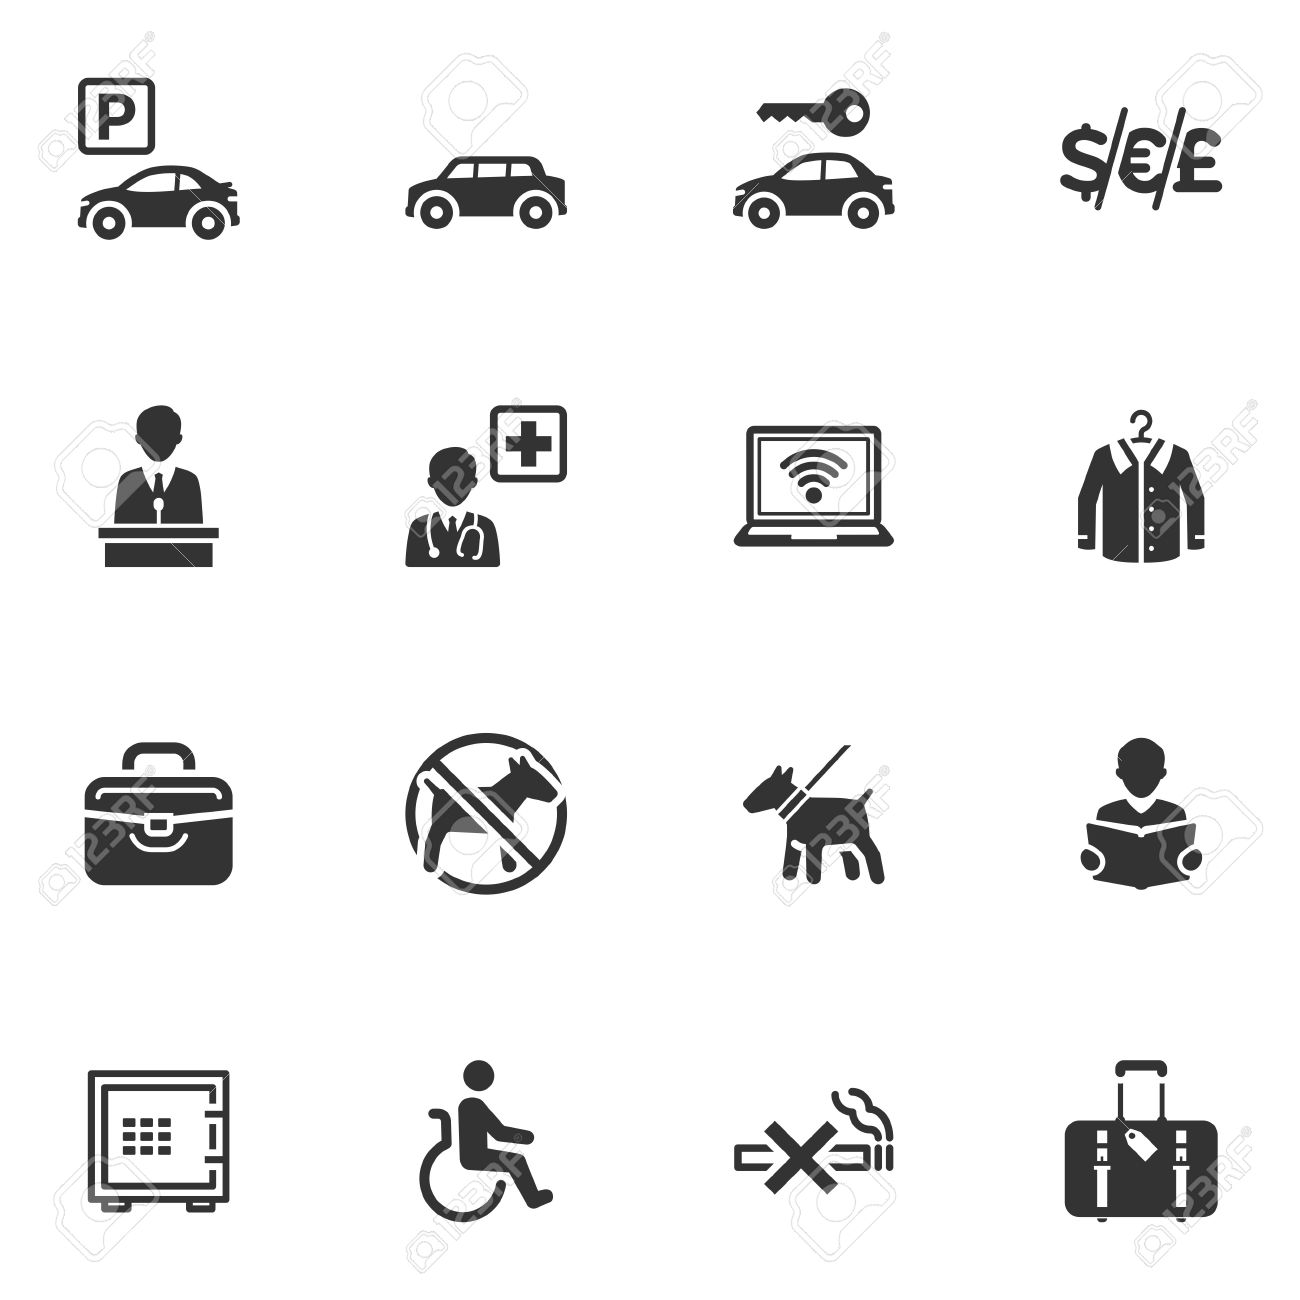 Hotel Services And Facilities Icons